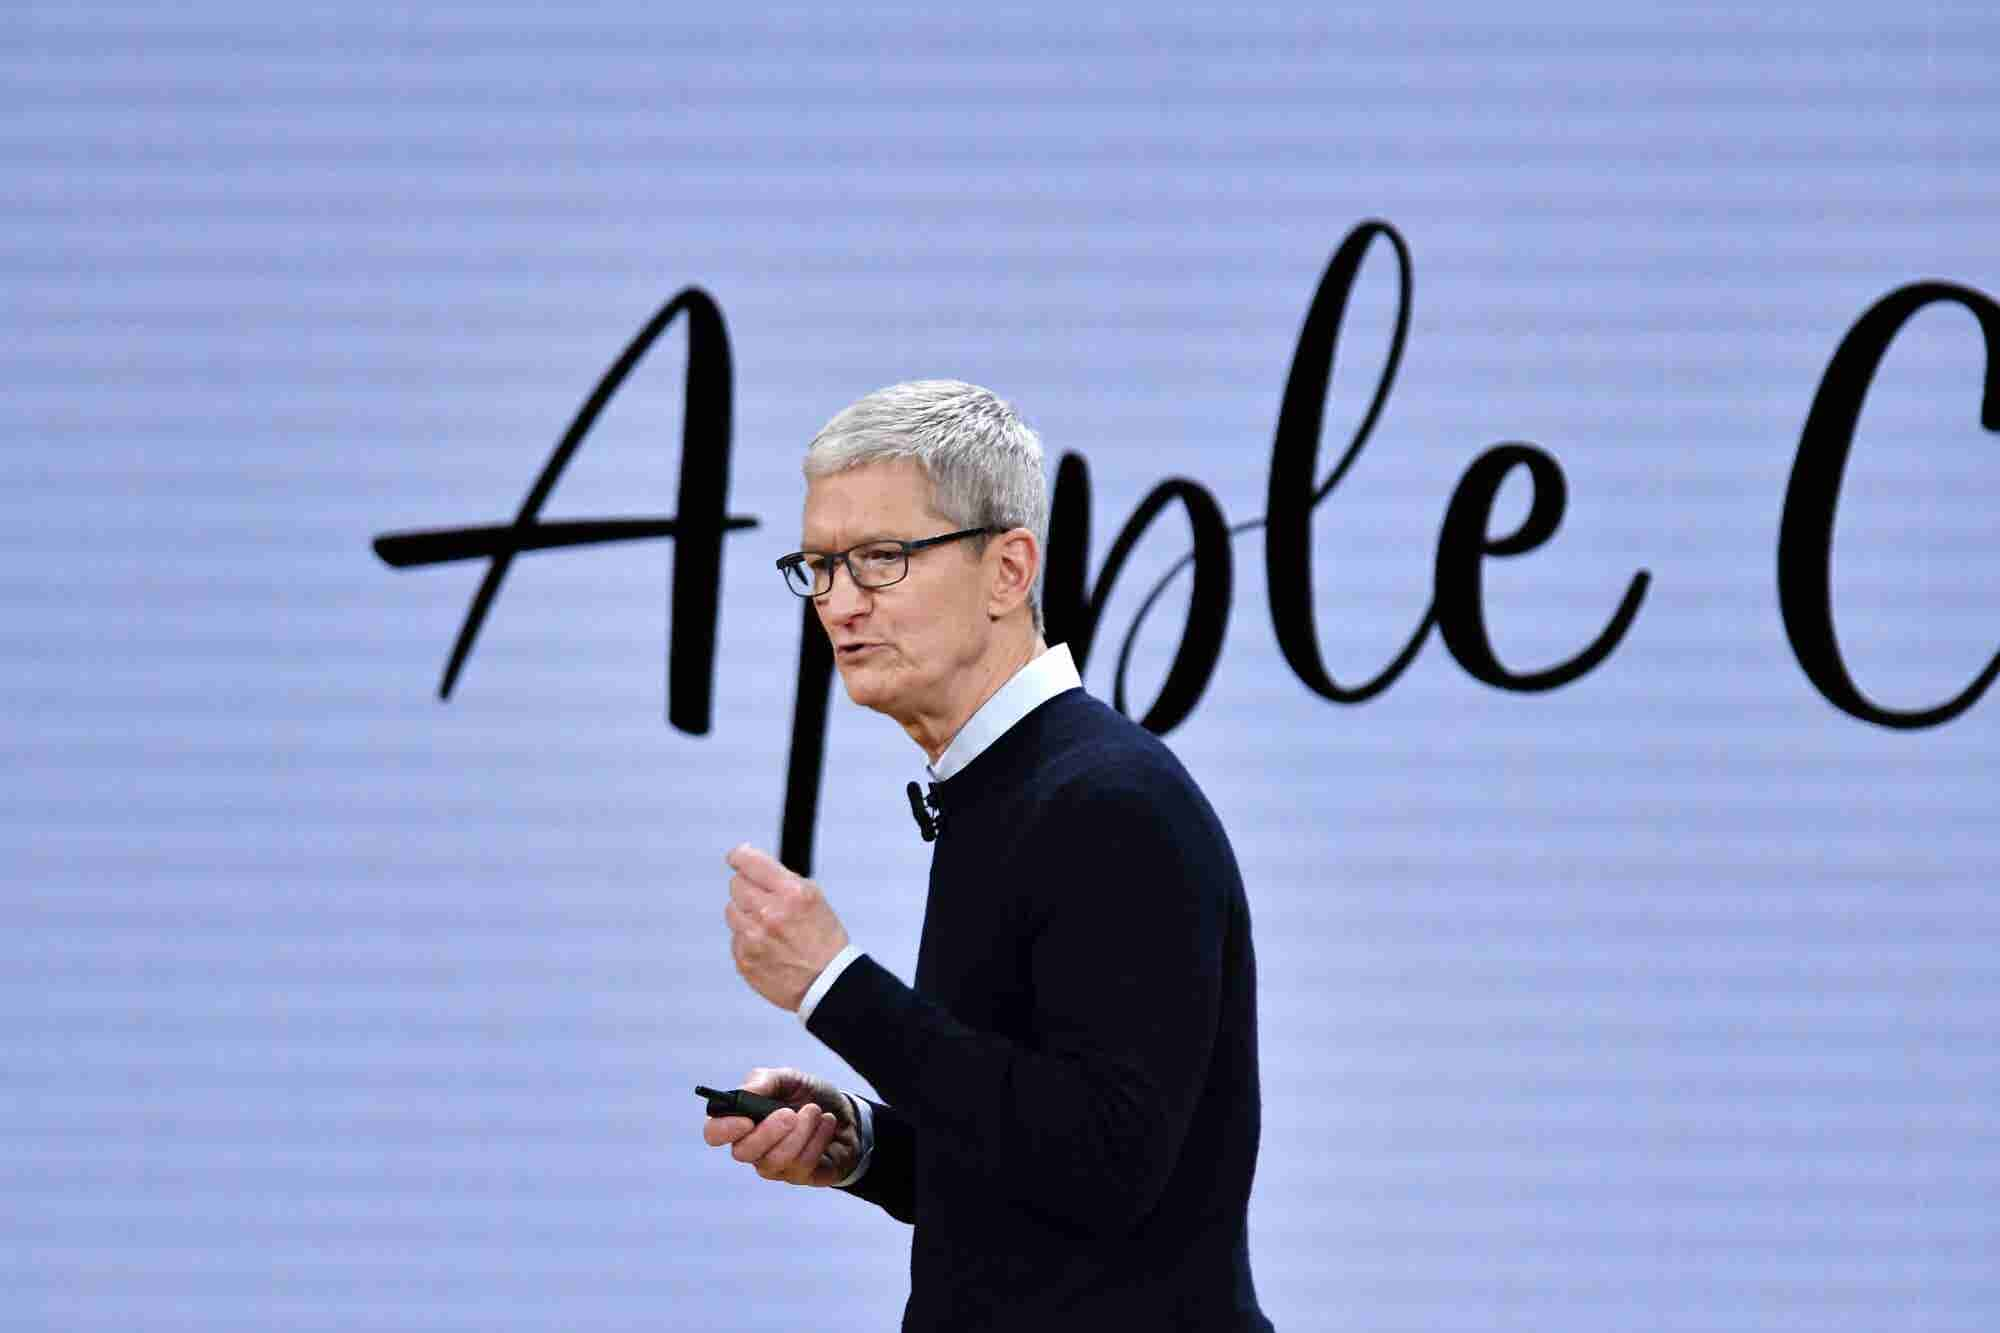 Apple CEO Tim Cook to Employees on $1 Trillion Milestone: 'It's Not th...